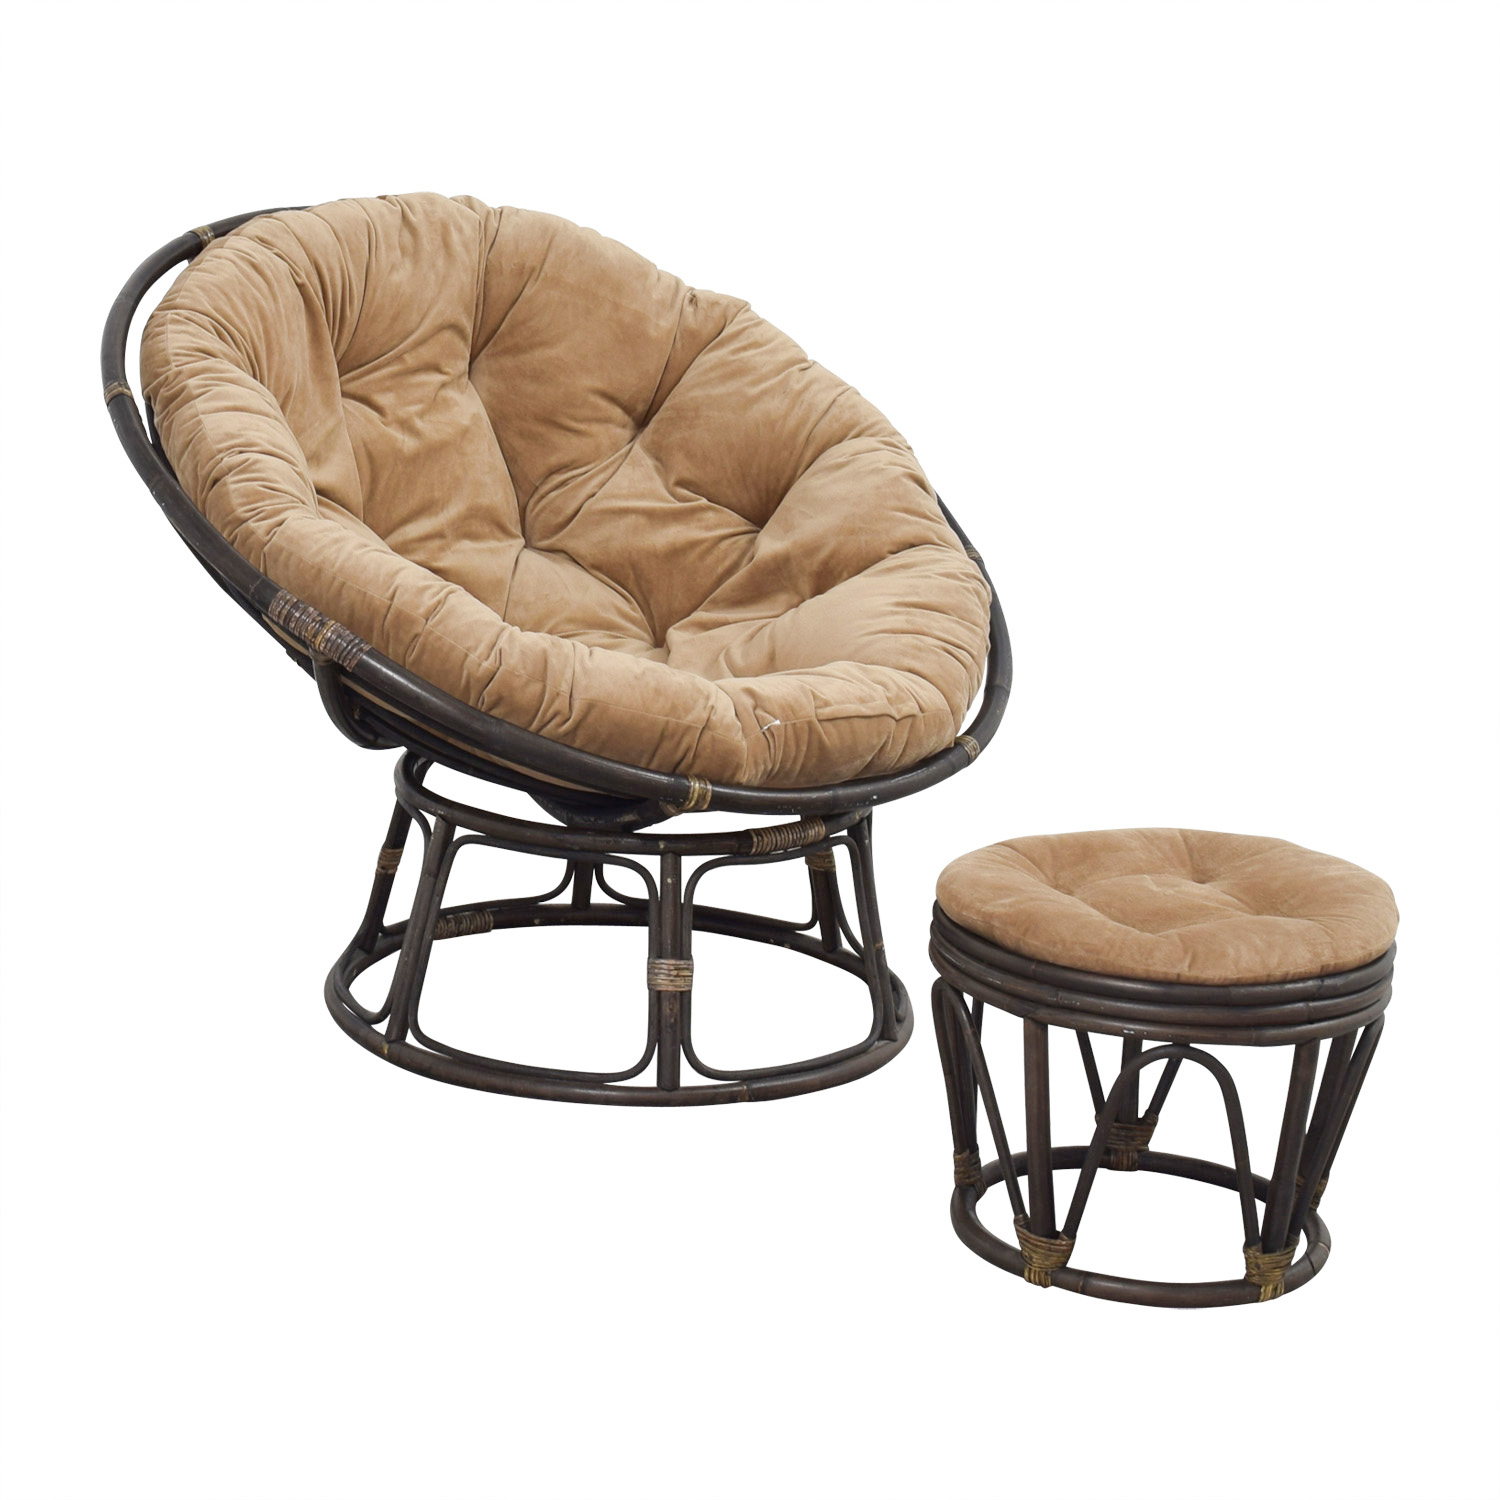 Cool 63 Off Pier 1 Pier 1 Imports Papasan Brown Lounge Chair And Ottoman Chairs Andrewgaddart Wooden Chair Designs For Living Room Andrewgaddartcom